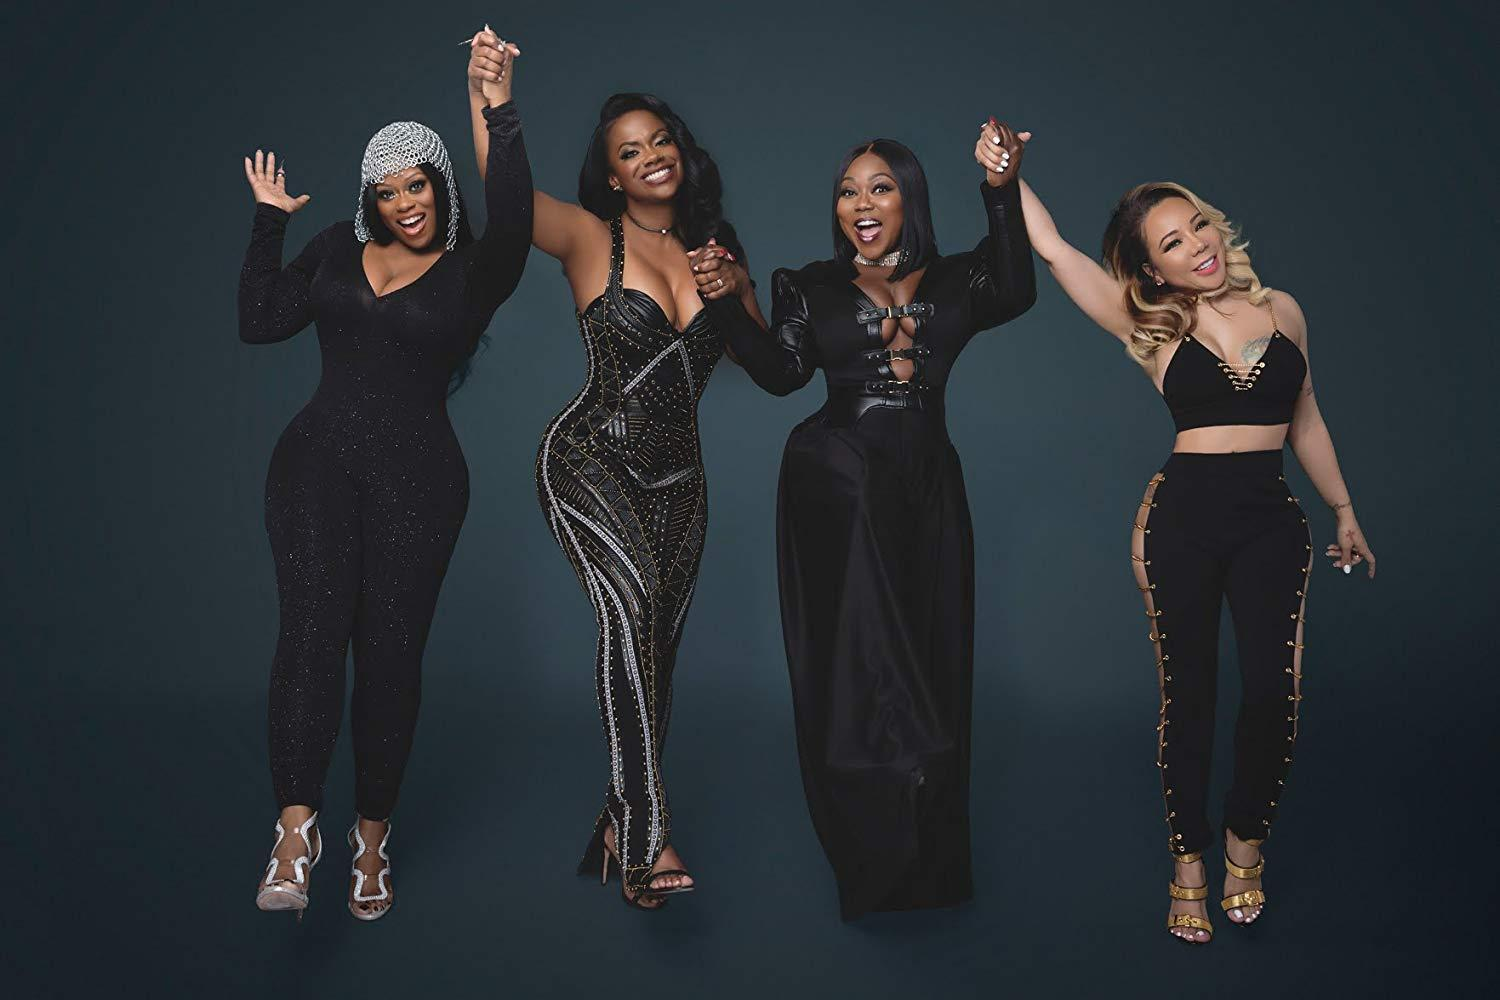 Tiny Harris And Tamika Scott Are Showing Off Their Best Angles On Camera And Kandi Burruss Is Here For It